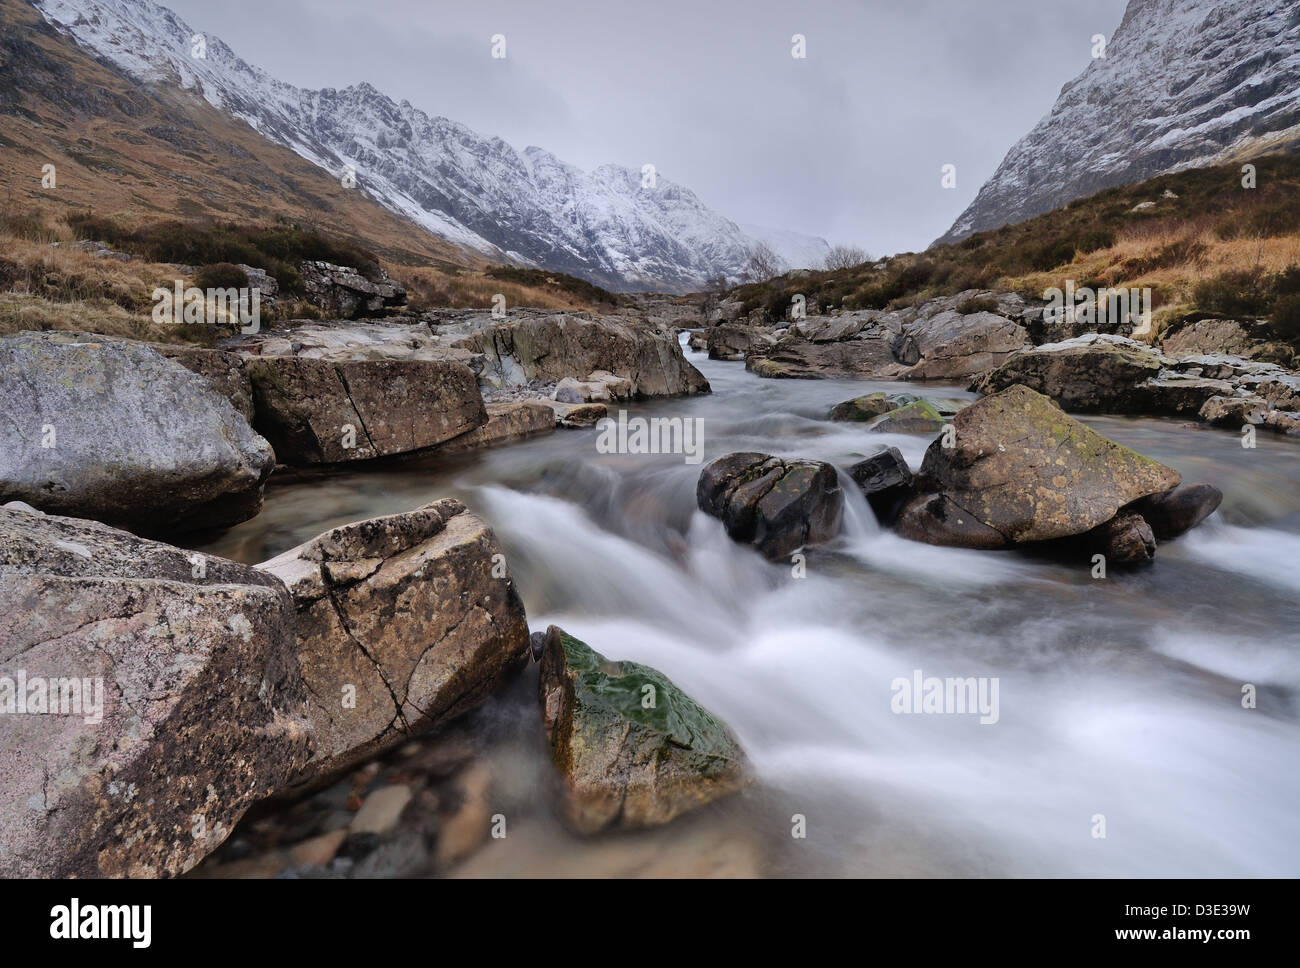 River Coe, Glencoe, with the snow covered ridge of the Aonach Eagach in the background - Stock Image